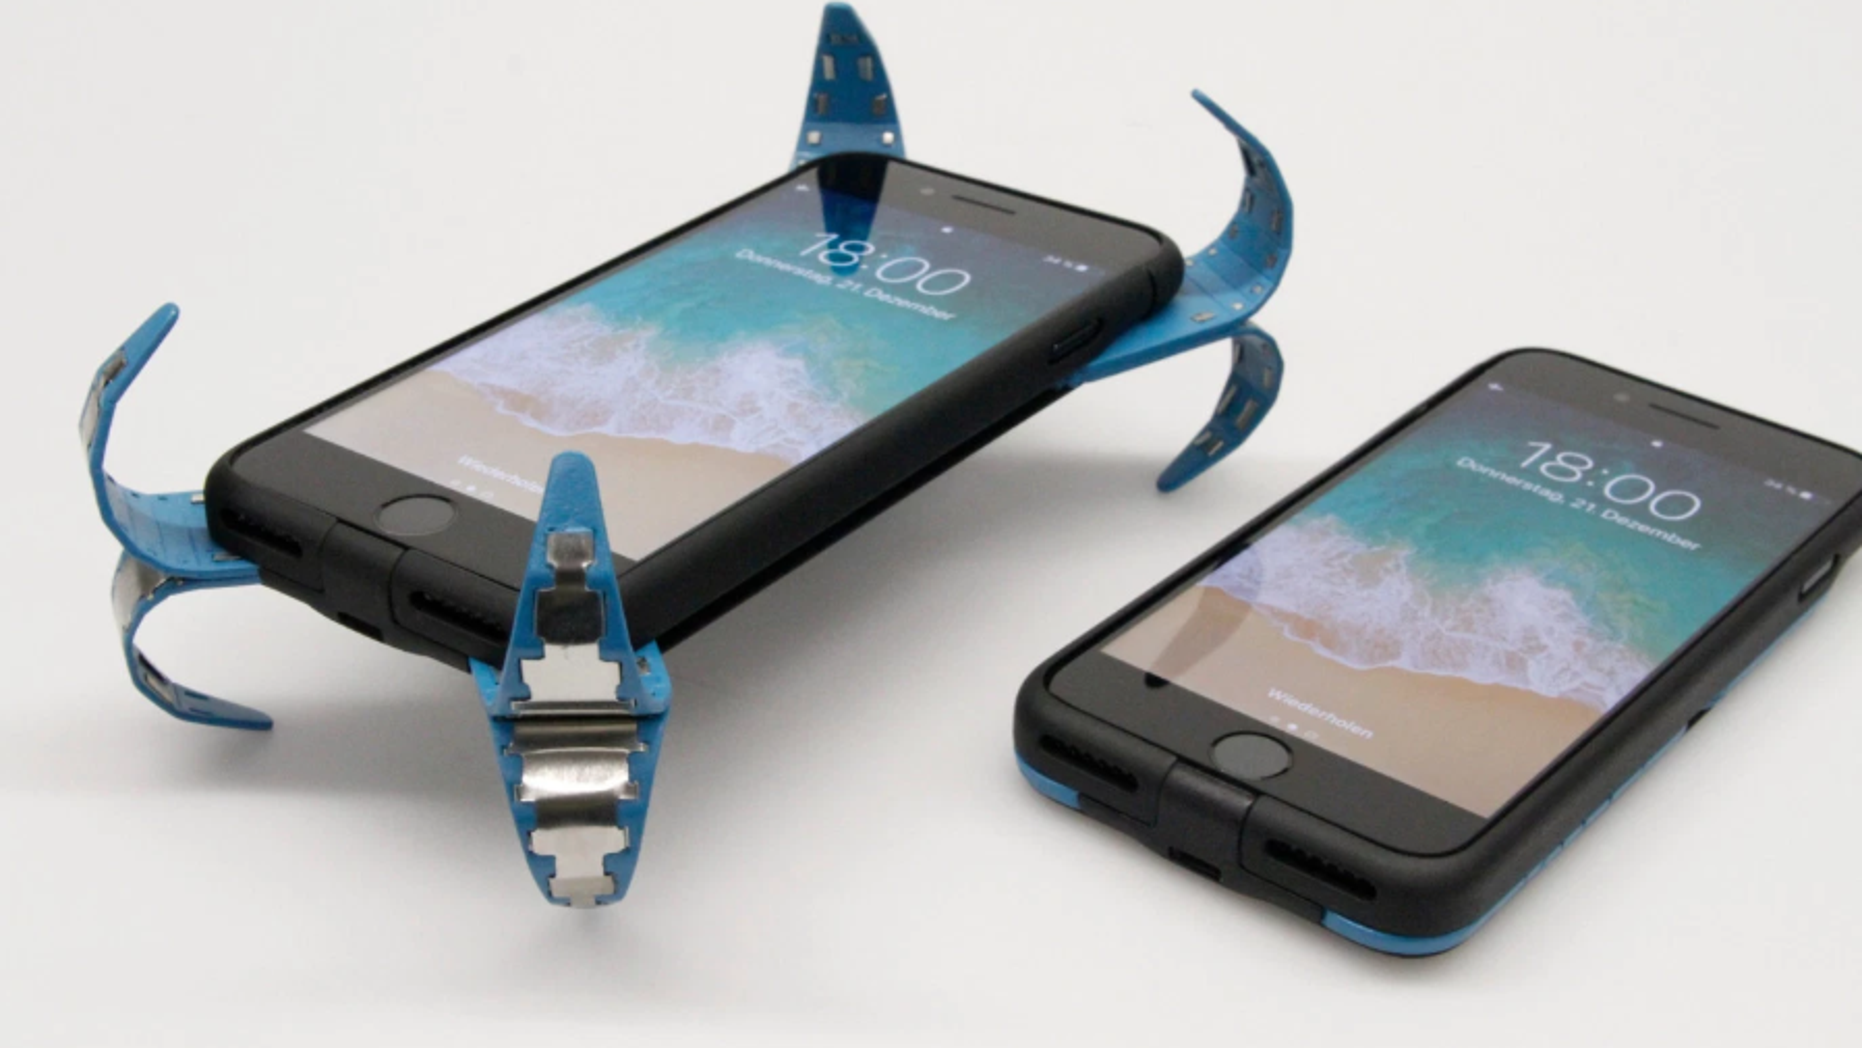 Philip Frenzel, 25, created a smartphone case that will protect phones when they drop.